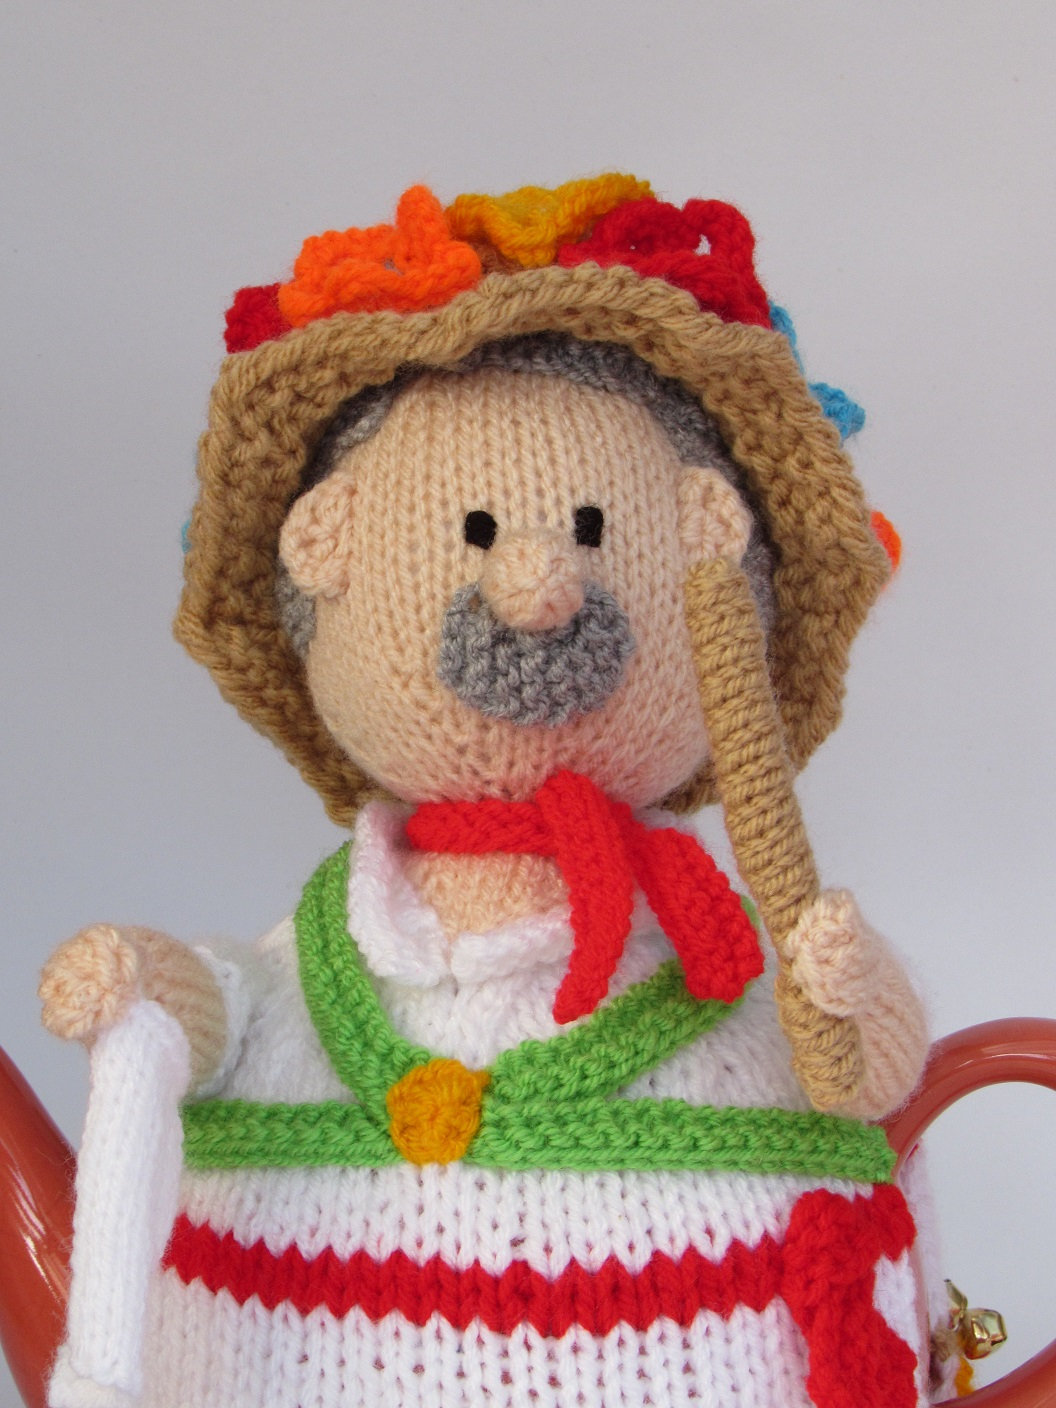 Morris Dancer knitting pattern